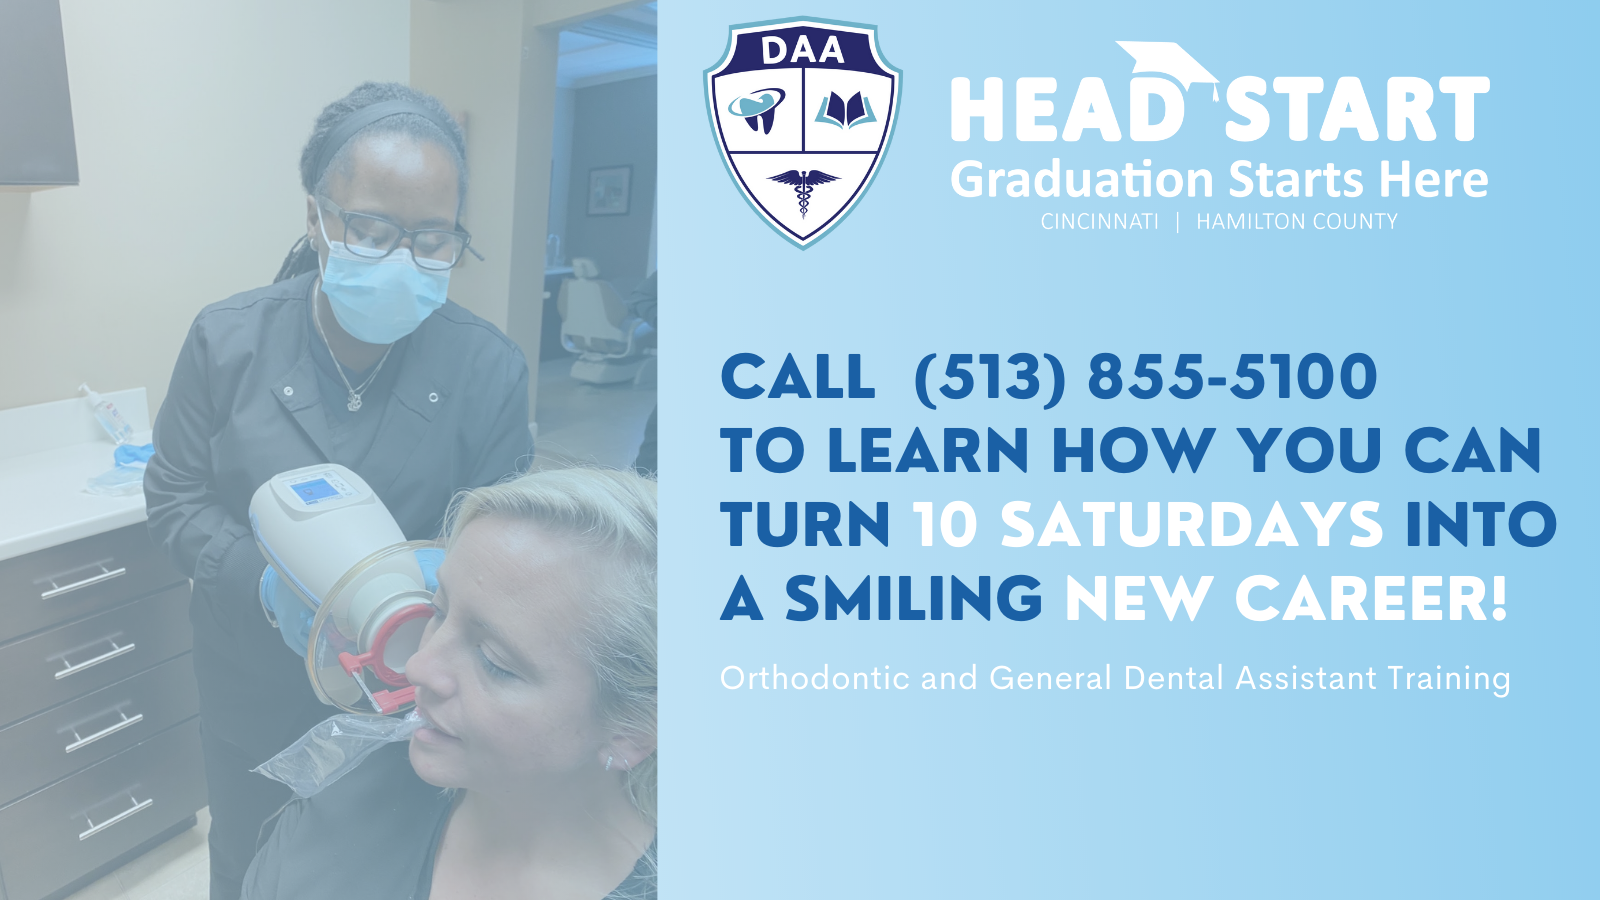 There's a lot to smile about in a new career training program that offers board certified dental assistant training in just 10 weeks.